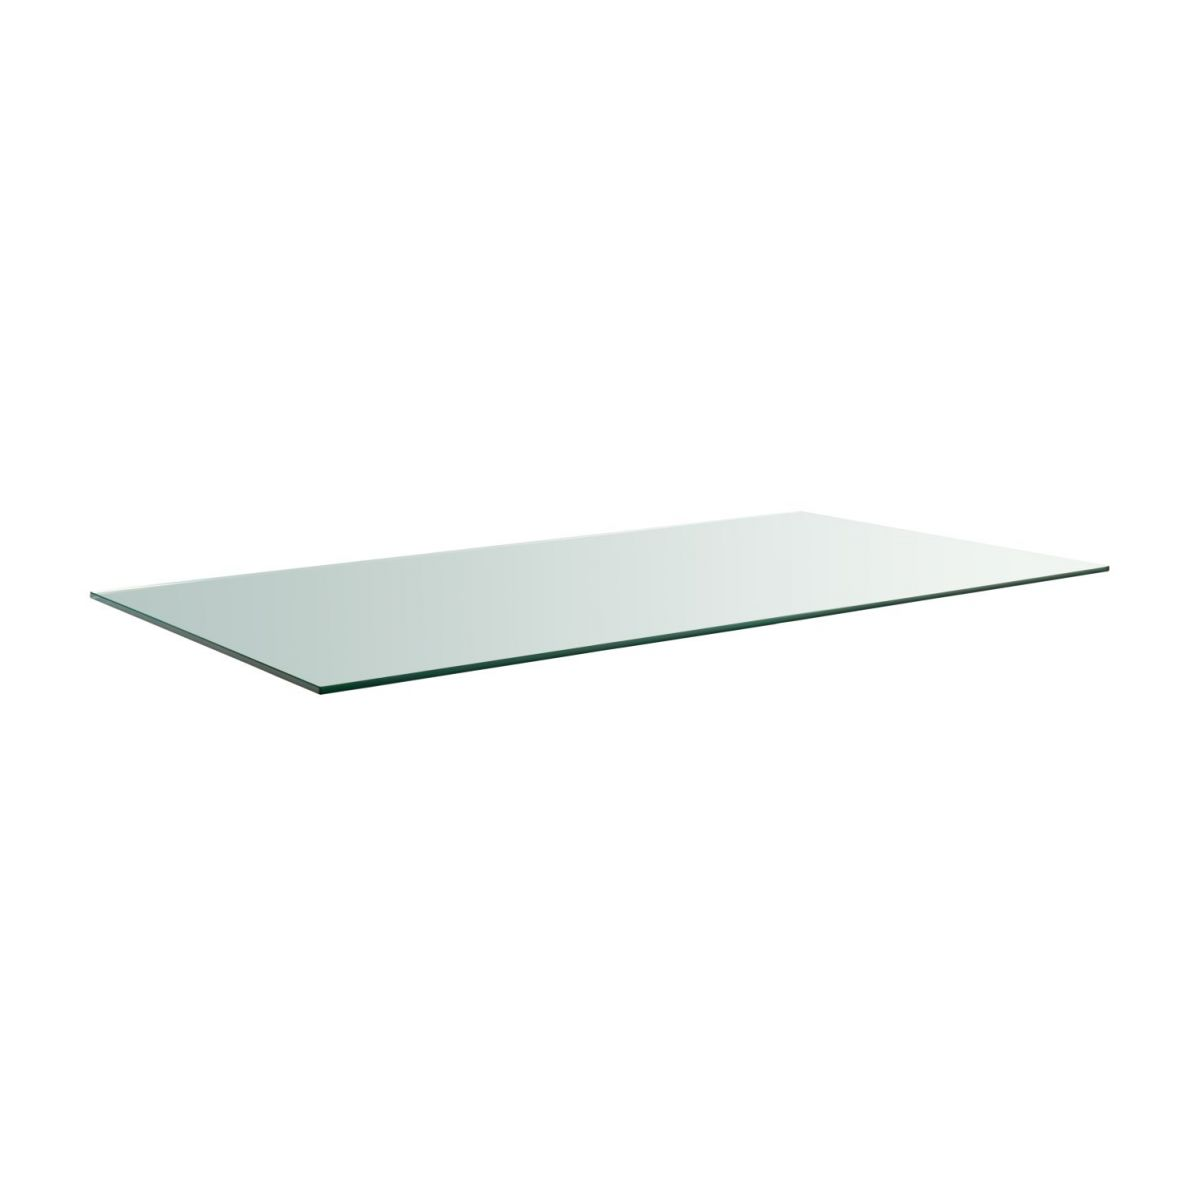 Protege Table En Verre Lagon Plateau De Table En Verre 160x80cm